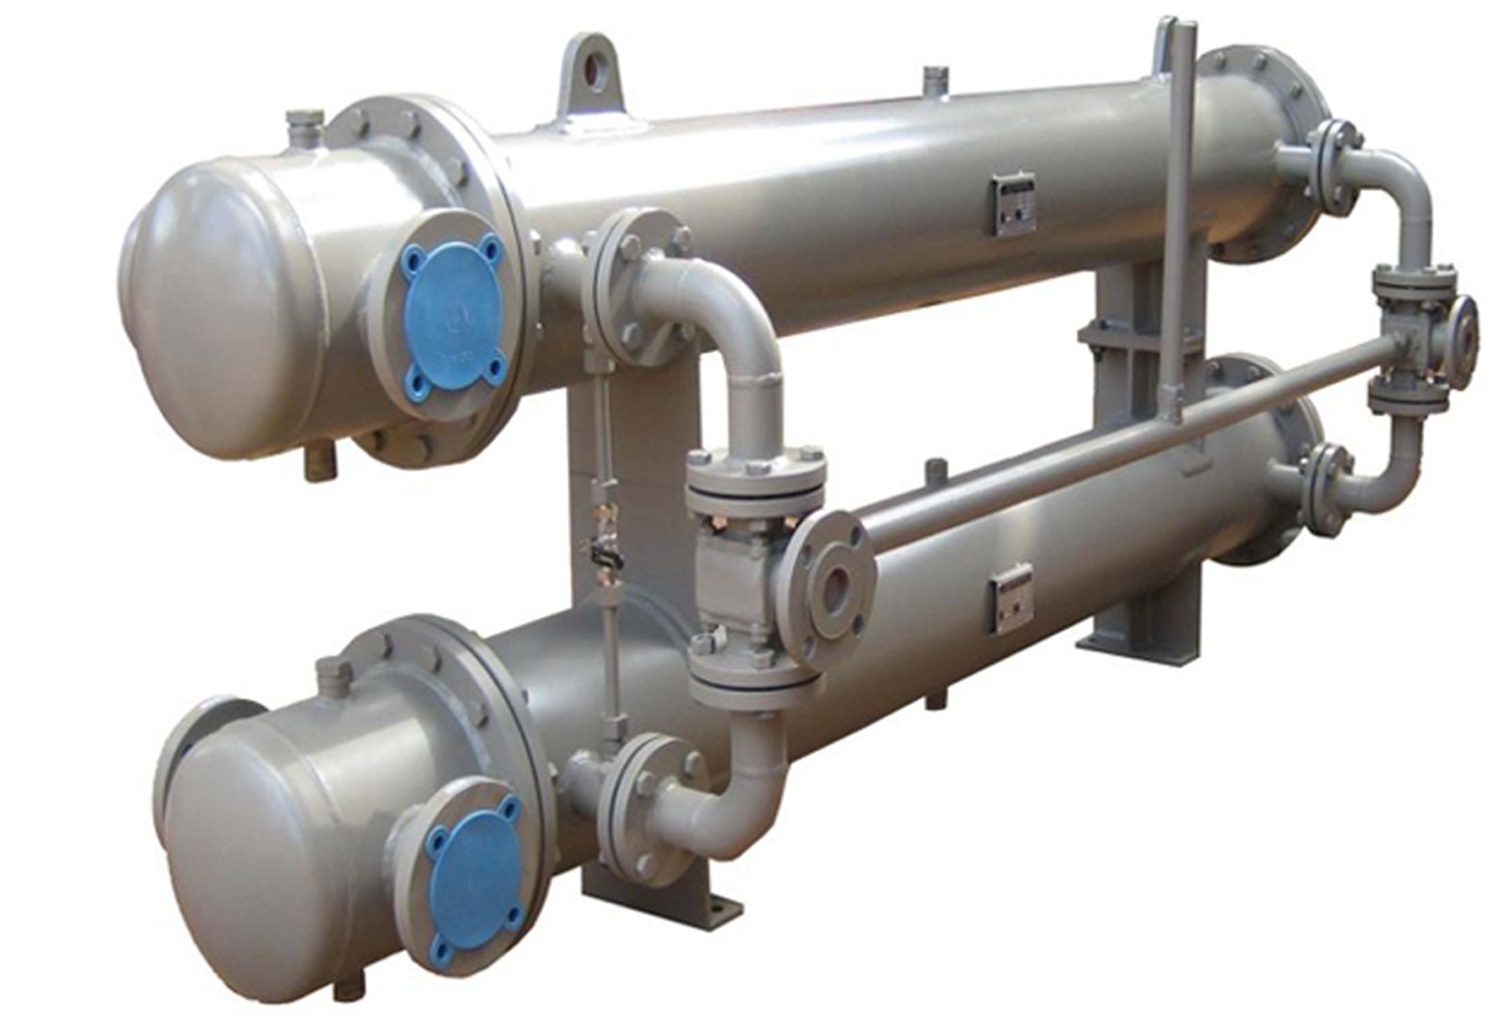 Esaplling heat exchanger